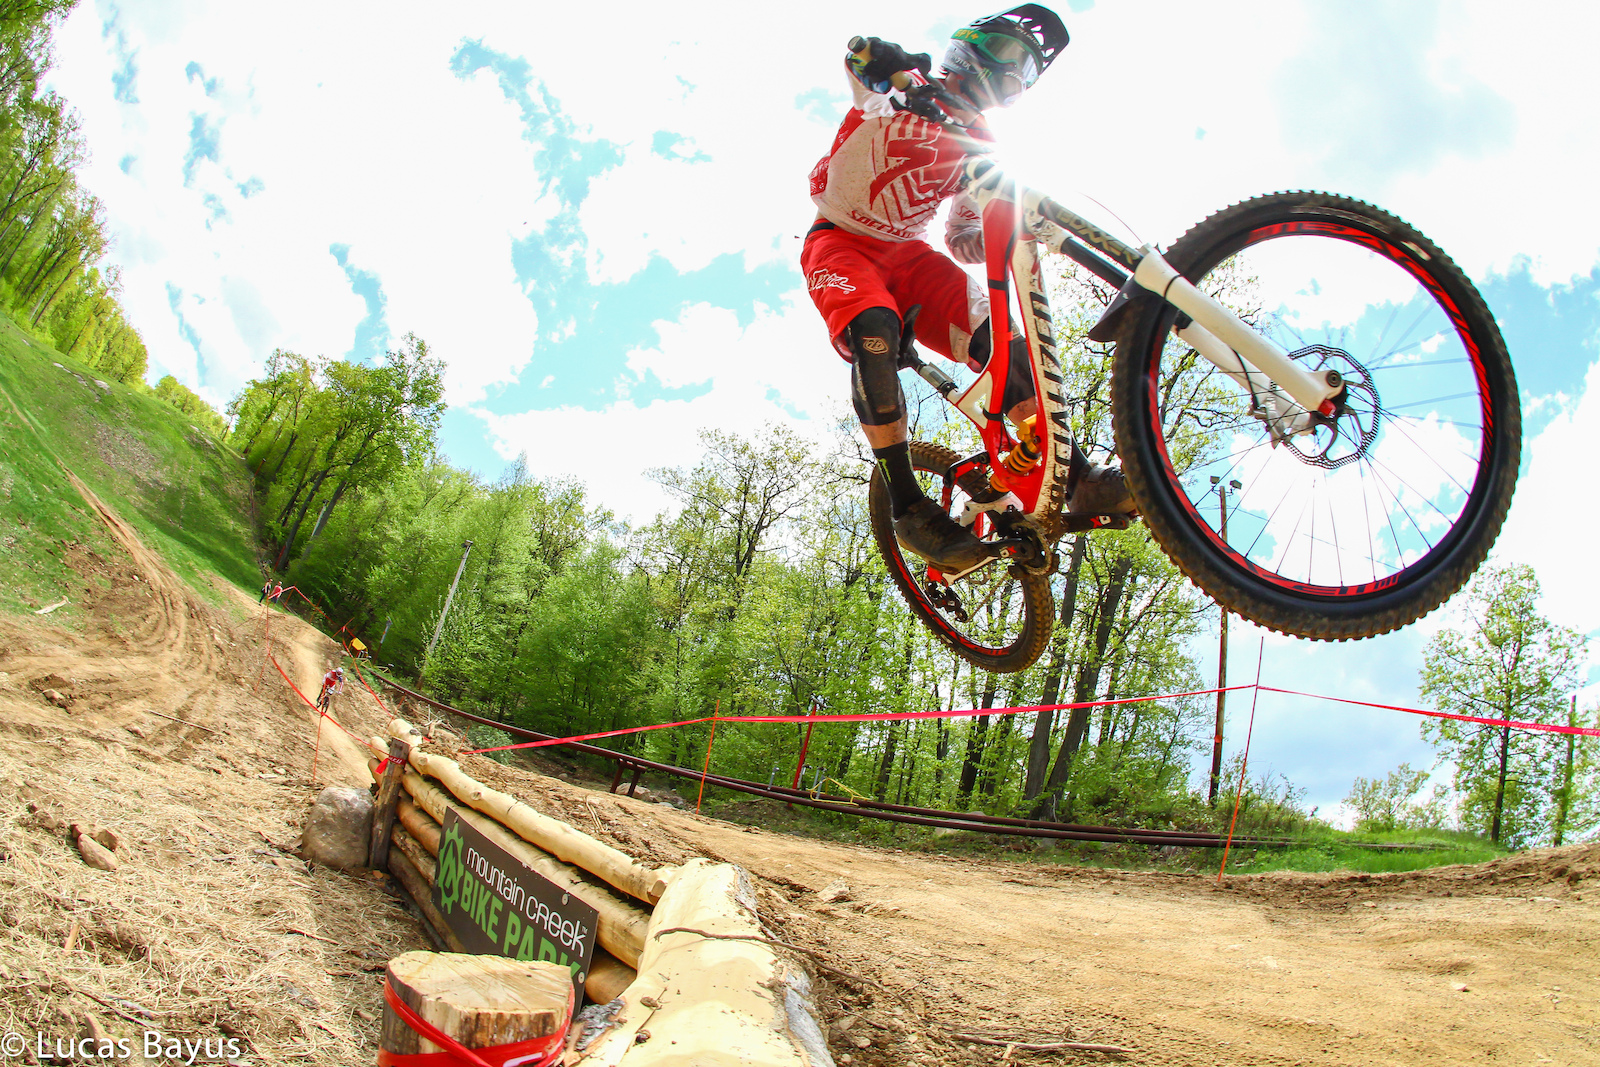 Mitch staying low over the hip at Mountain Creek